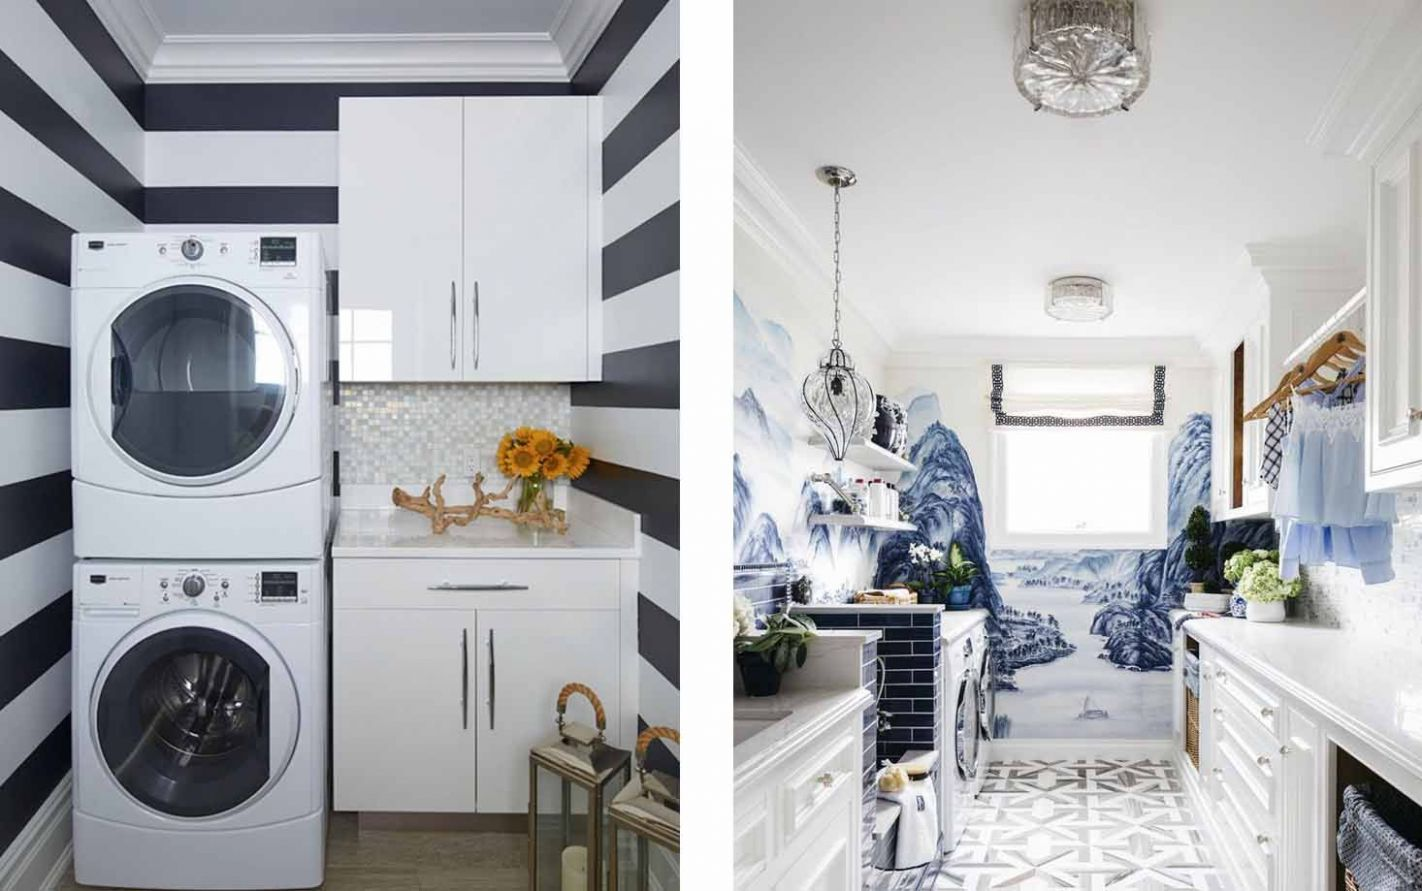 11 Beautiful Small Laundry Room Ideas - Best Laundry Room Designs ...